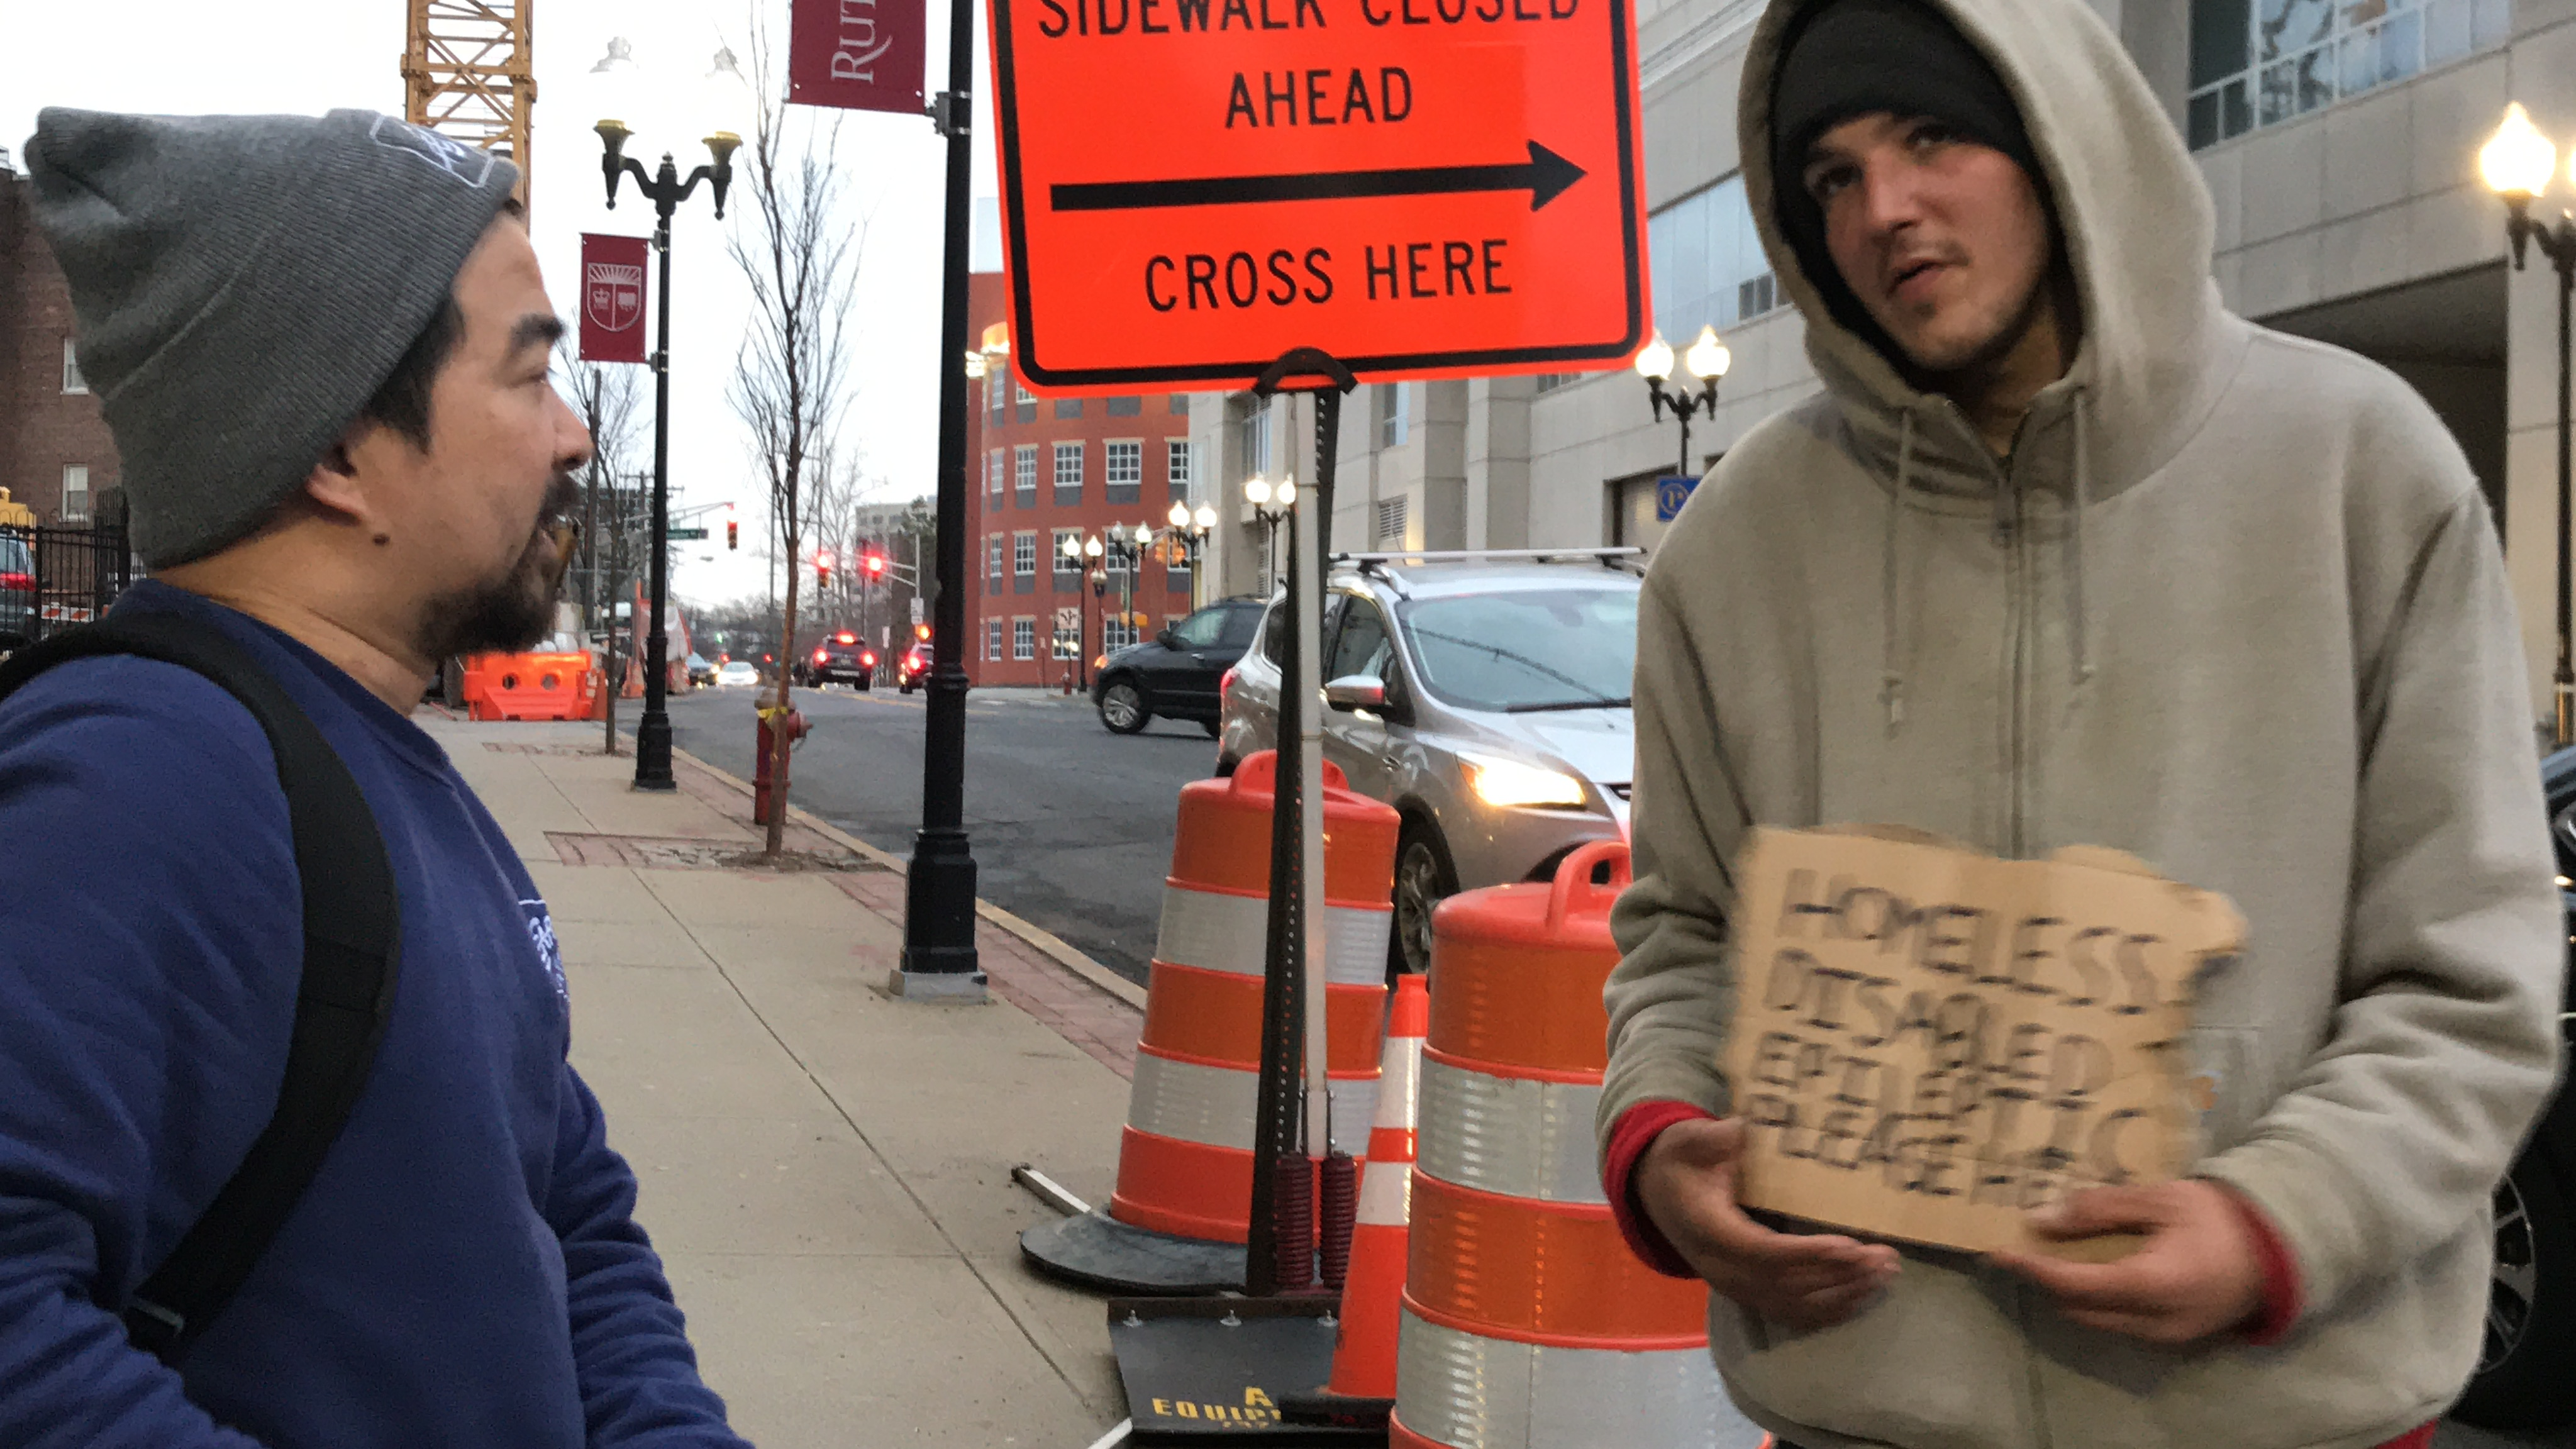 Shoes For The Homeless Campaign In New Jersey